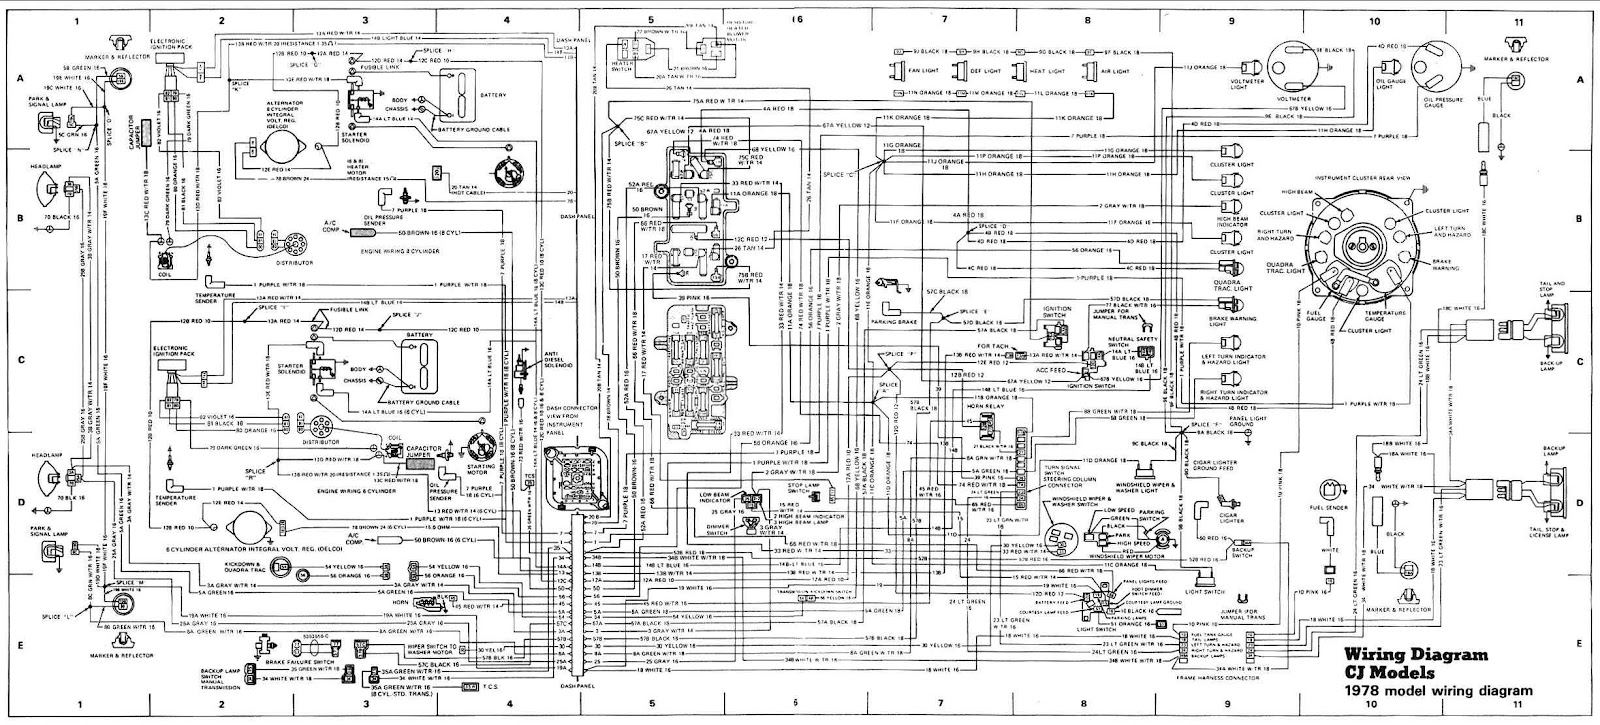 Hyundai I10 Ecu Wiring Diagram Acme Control Transformer Diagrams Jeep Cj Models 1978 Complete Electrical | All About